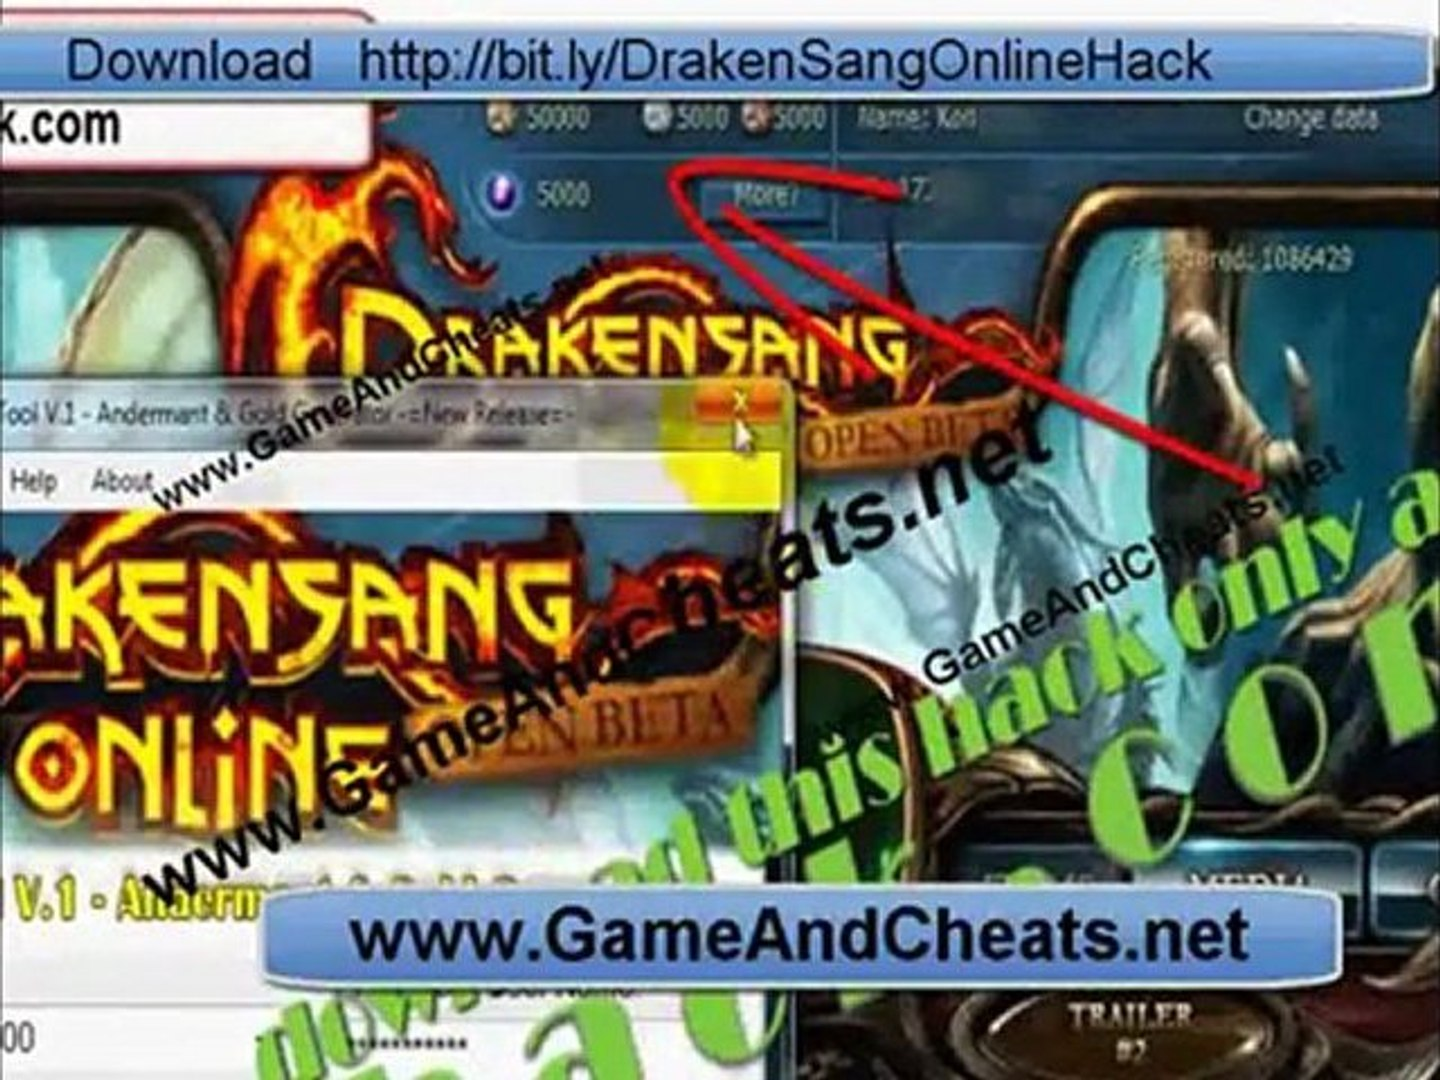 Update DrakenSang Online Hack Free Hack January 2012